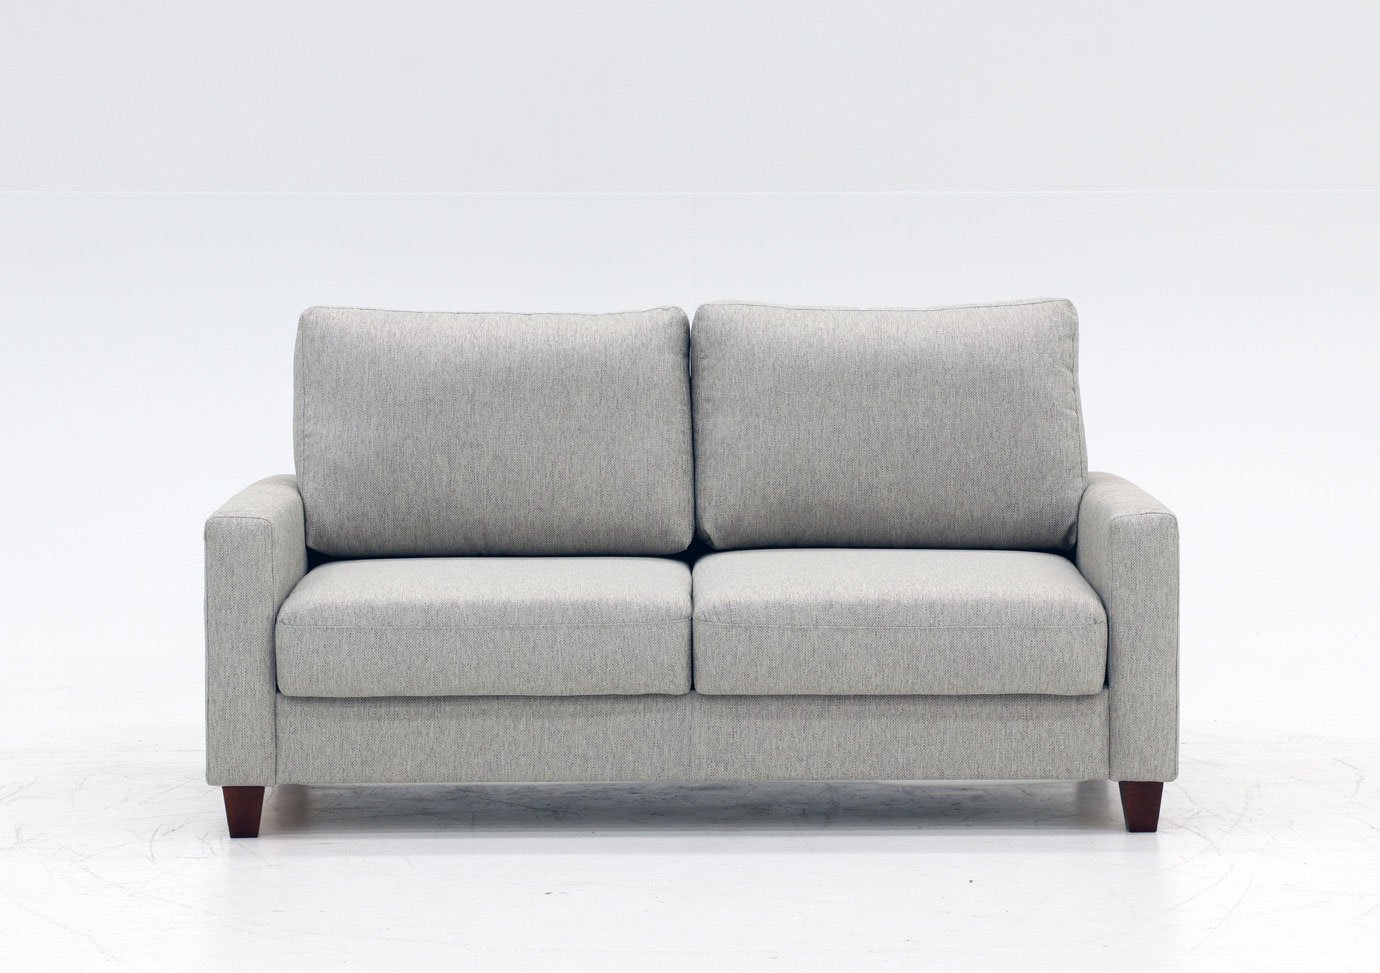 Groovy Nico Loveseat Sleeper Full Size By Luonto Furniture Lamtechconsult Wood Chair Design Ideas Lamtechconsultcom